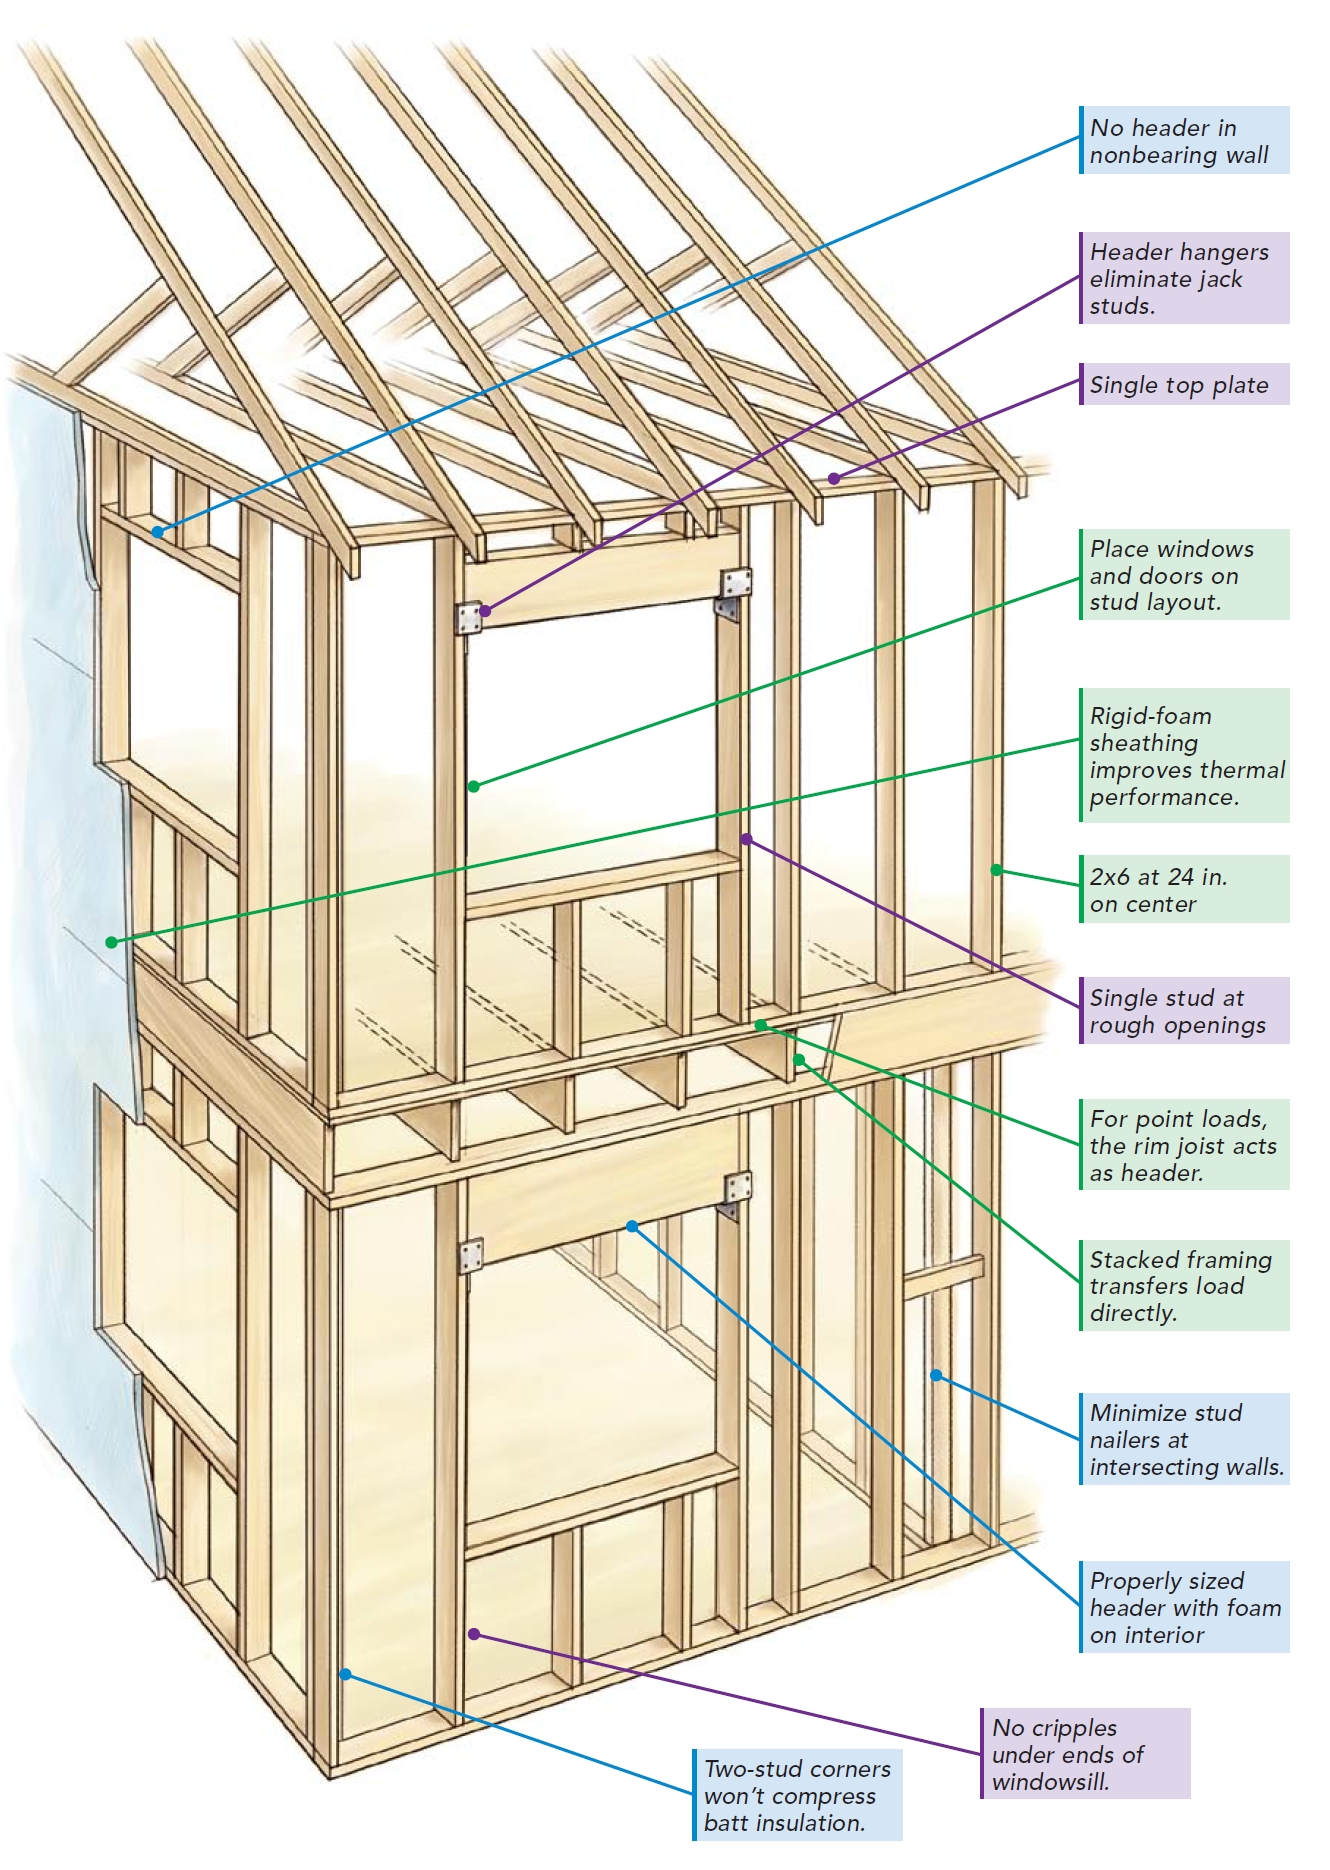 Common Wall Construction : Effective r value of common wall construction methods